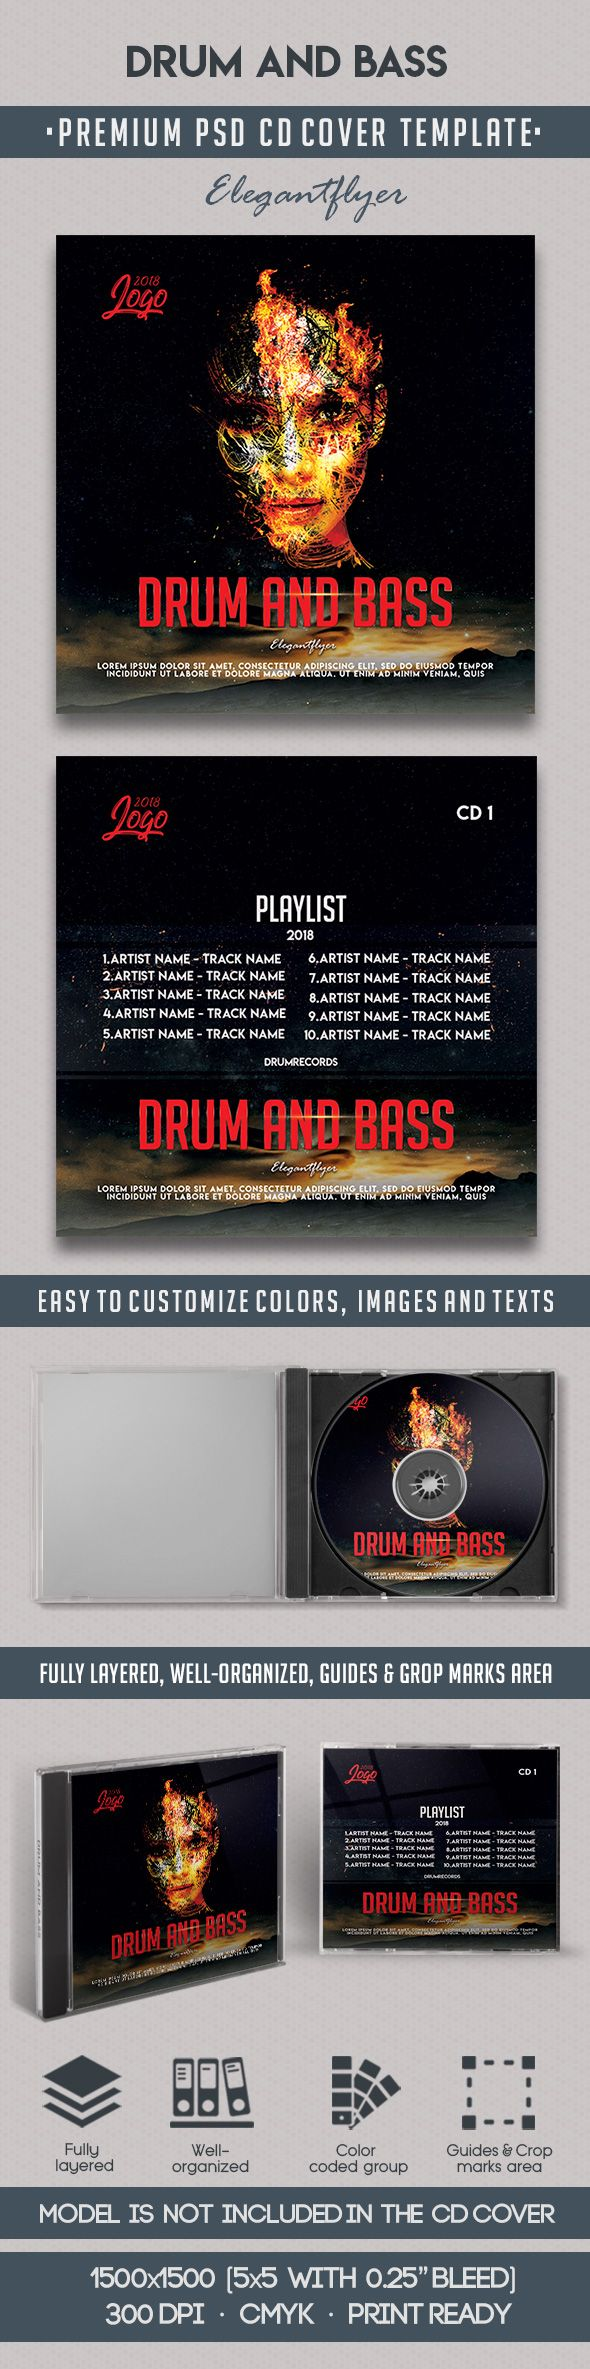 Drum and Bass – Premium CD Cover PSD Template